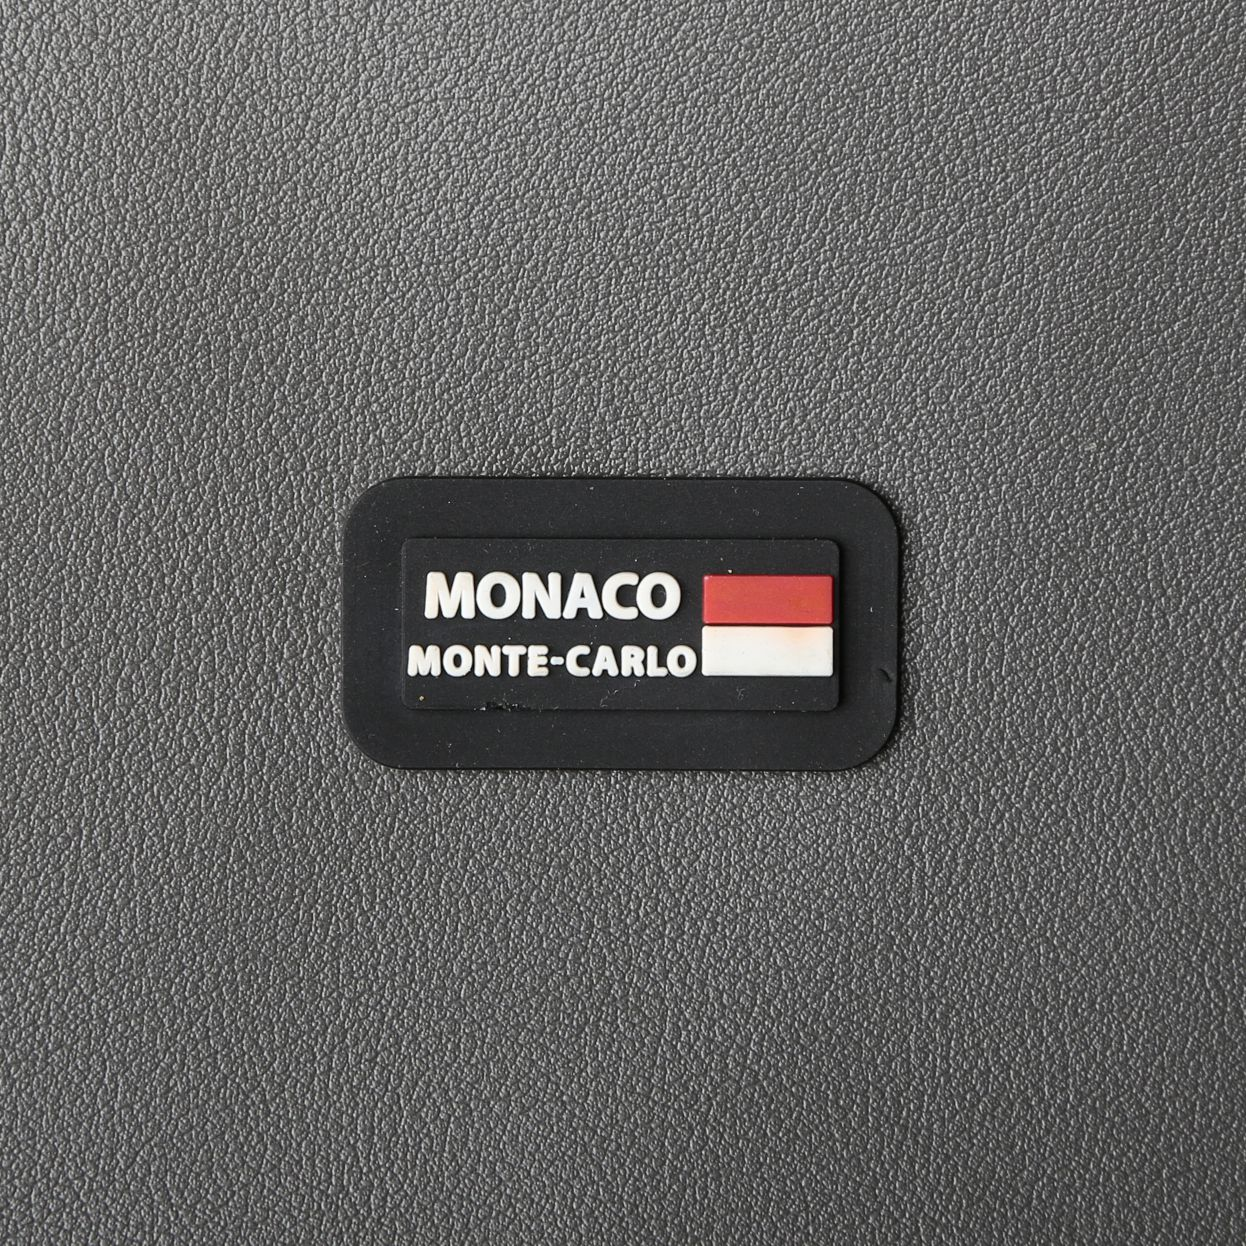 Rubber And PU Labels (17)